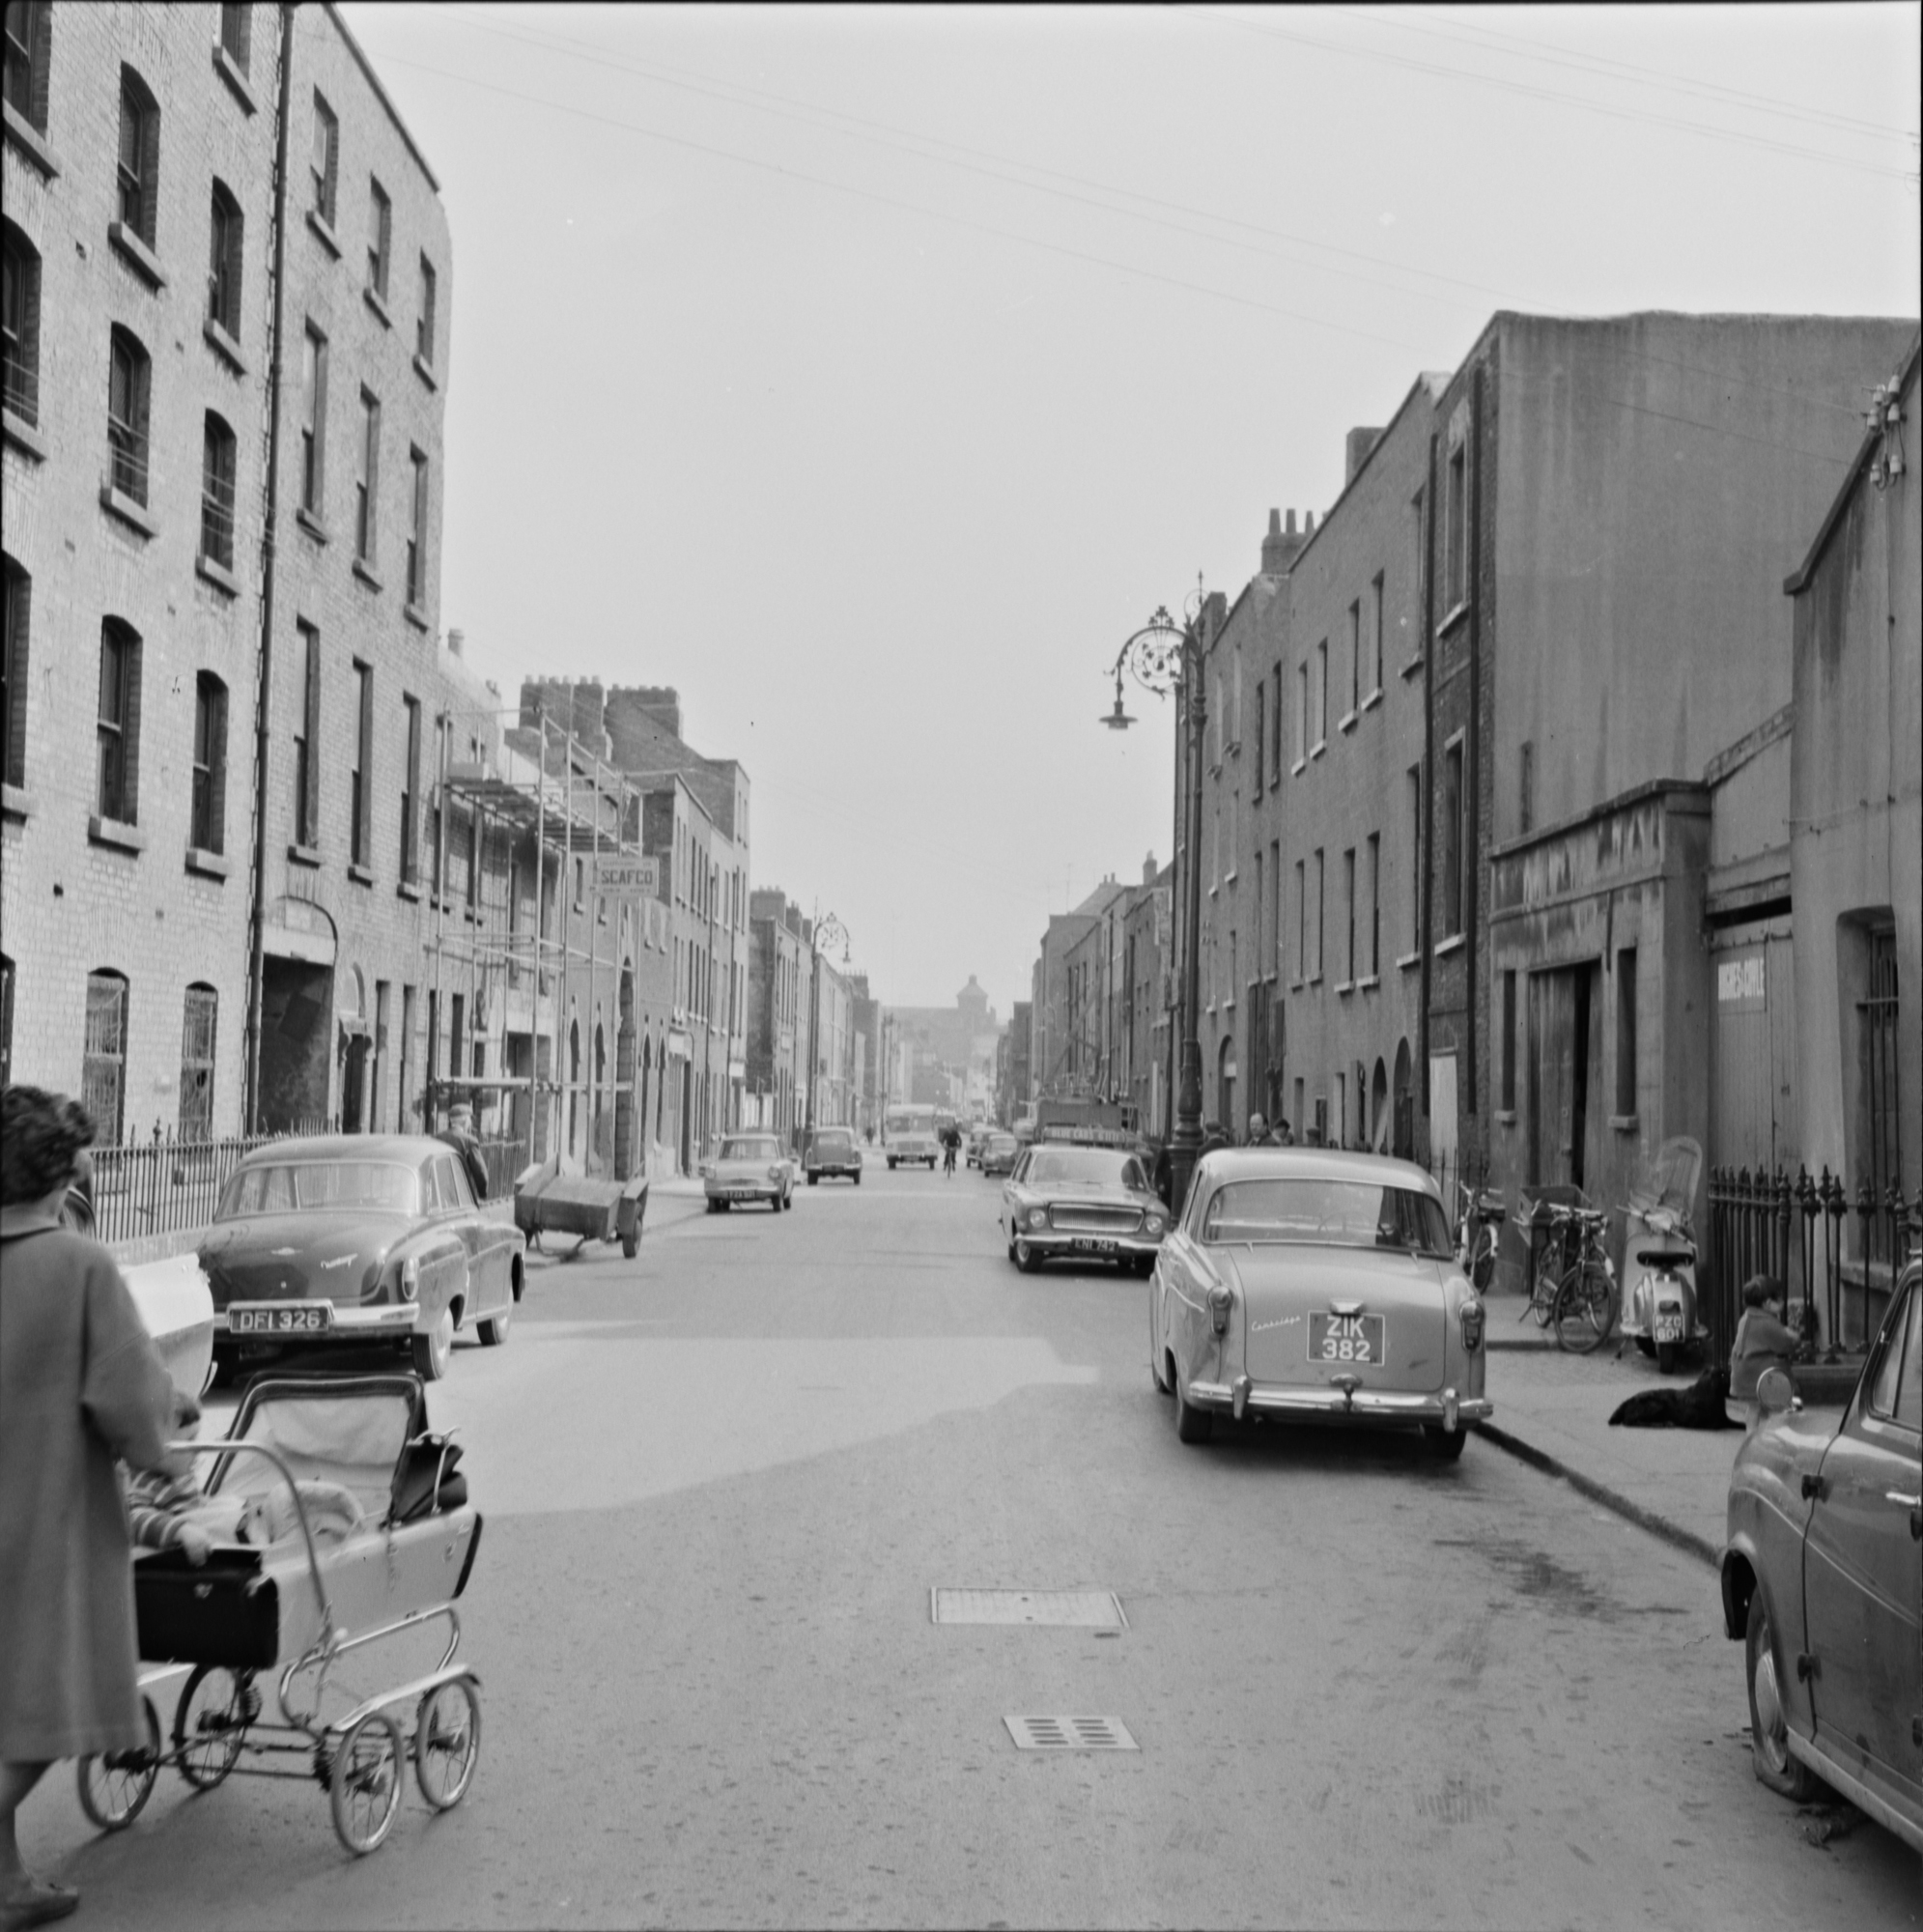 "Ireland 1960s, Queen Street, Dublin City, Co. Dublin As I was uploading this I had a strange sense that I was seeing a case of ""deja vu"" all over again. Queen Street, in the ancient heart of Dublin's north side, as it was in 1964. It is one of many streets that have changed utterly in the meantime. Apart from corroberating how this part of Dublin has changed in recent decades, there was an interesting discussion today on the cars in this photo. Specifically, there seem to be several models which might've been more common in East Berlin than in North Dublin. Including Wartburg and DKW examples. There's an intruiging suggestion that the cars may have been used during filming of 'The Spy Who Came in from the Cold' (1965) in which Smithfield doubled for Cold War Berlin. However the dates may not fully add-up. A nice thought though..... Photographer: James P. O'Dea Collection:James P. O'Dea Date: 16 May 1964"